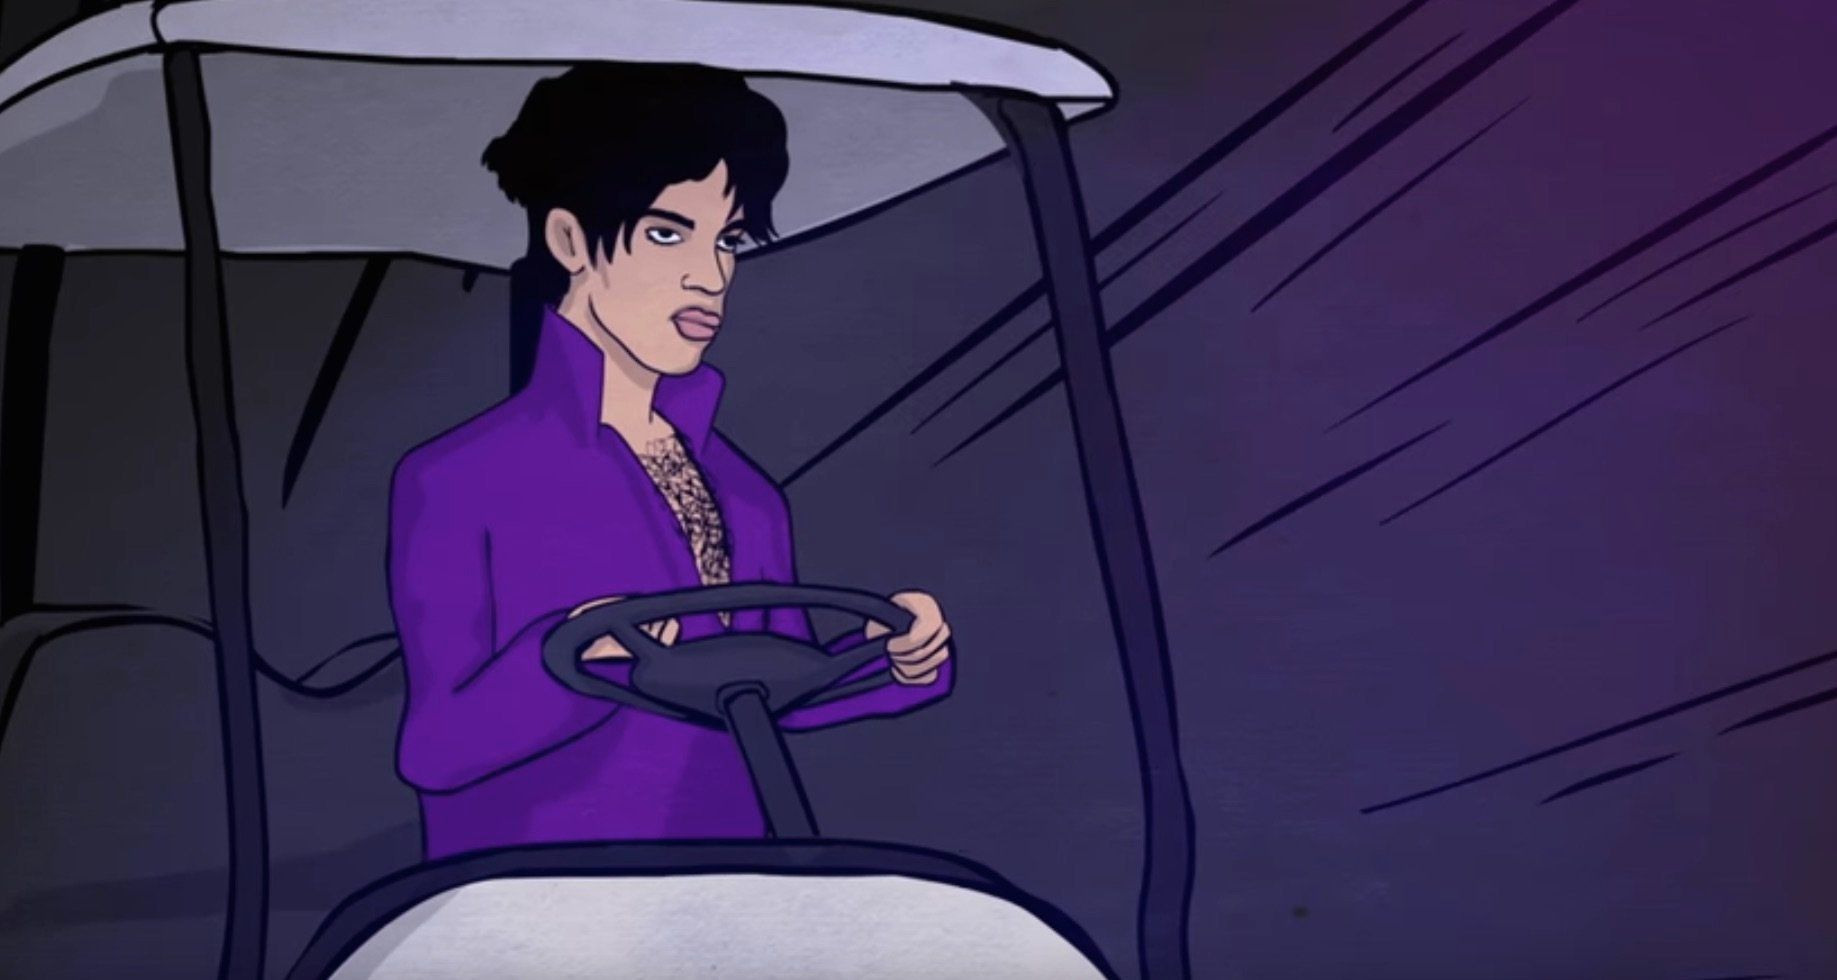 Prince in a golf cart